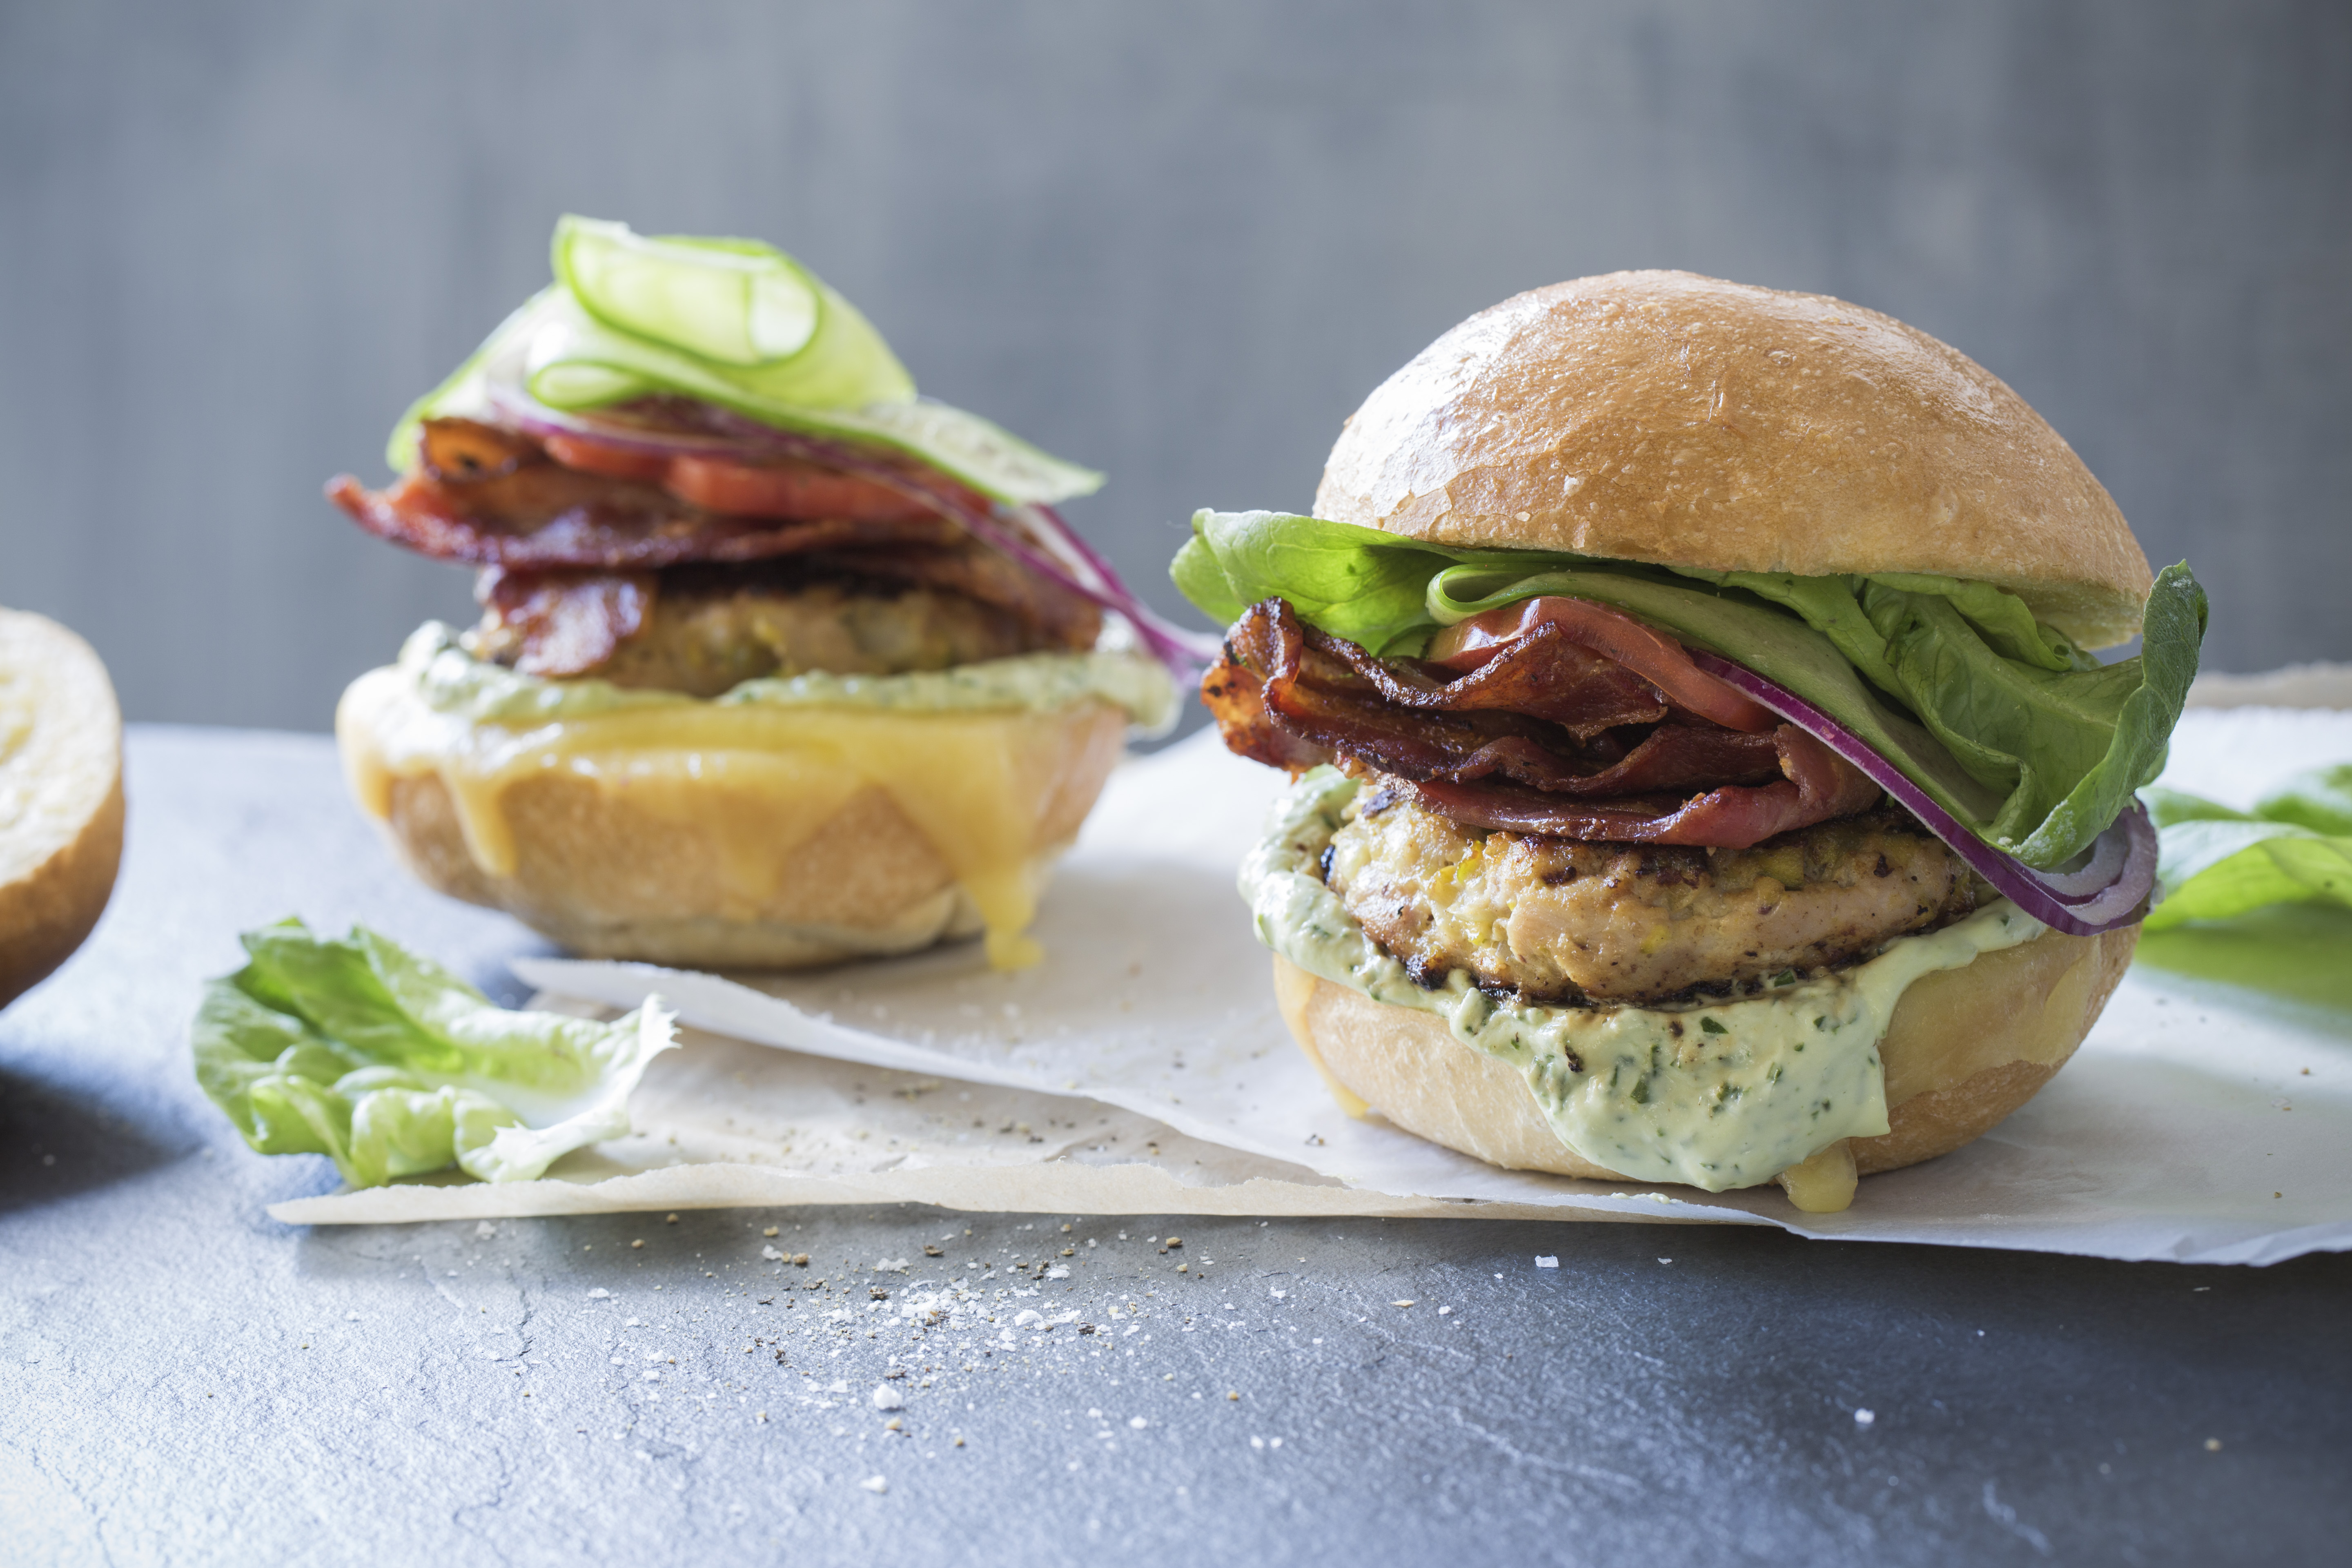 Chelseawinter Co Nz Chicken Bacon Burgers With Basil Avocado Mayo Chelseawinter Co Nz